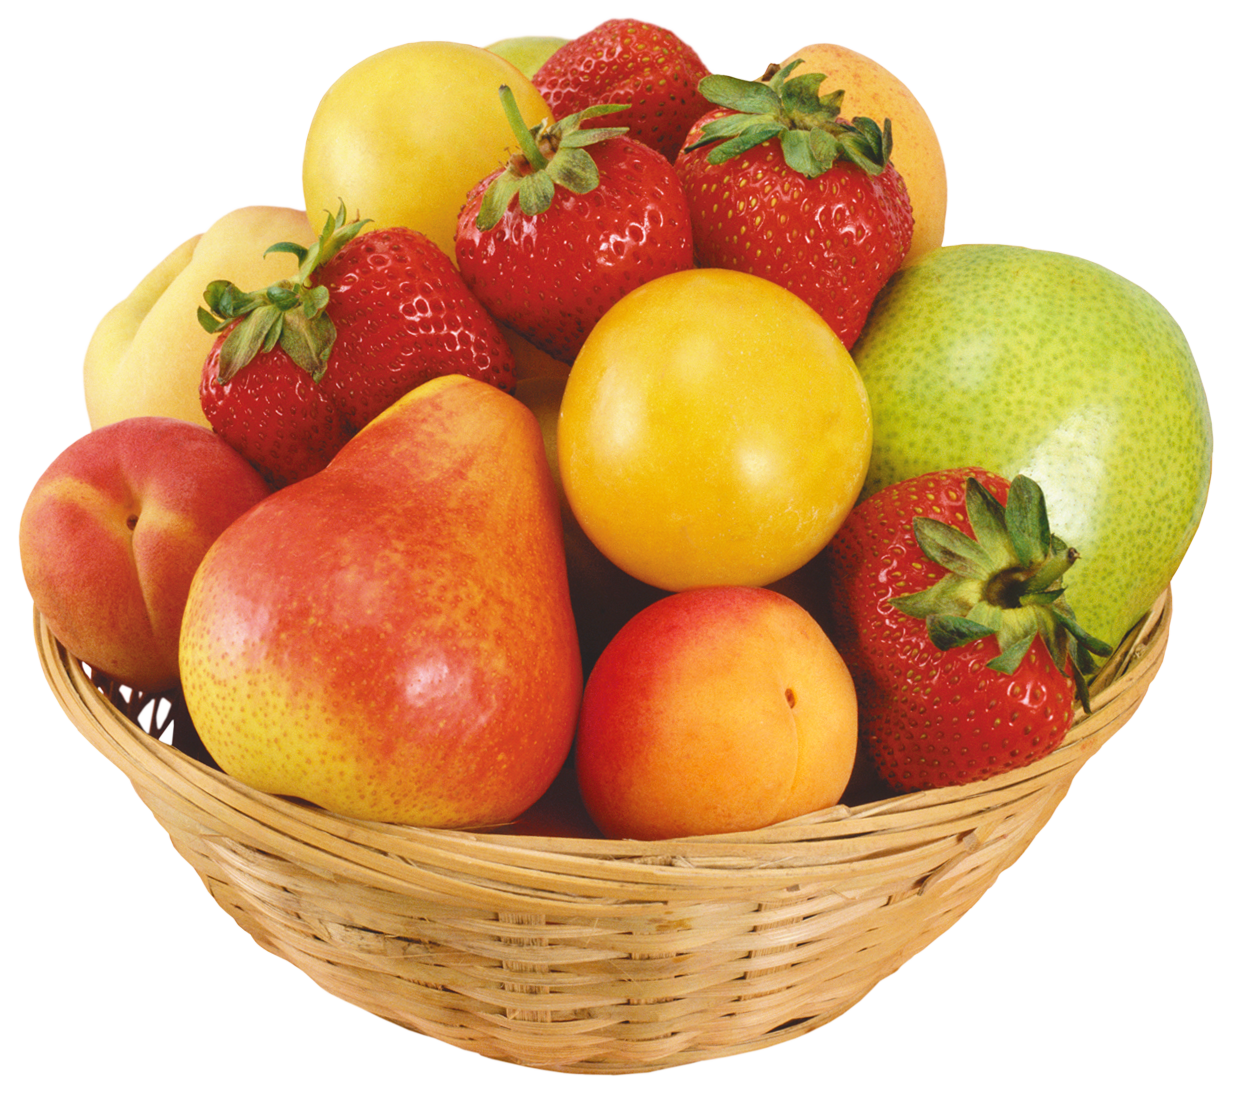 Transparent bowl fruit. Fruits in wicker png